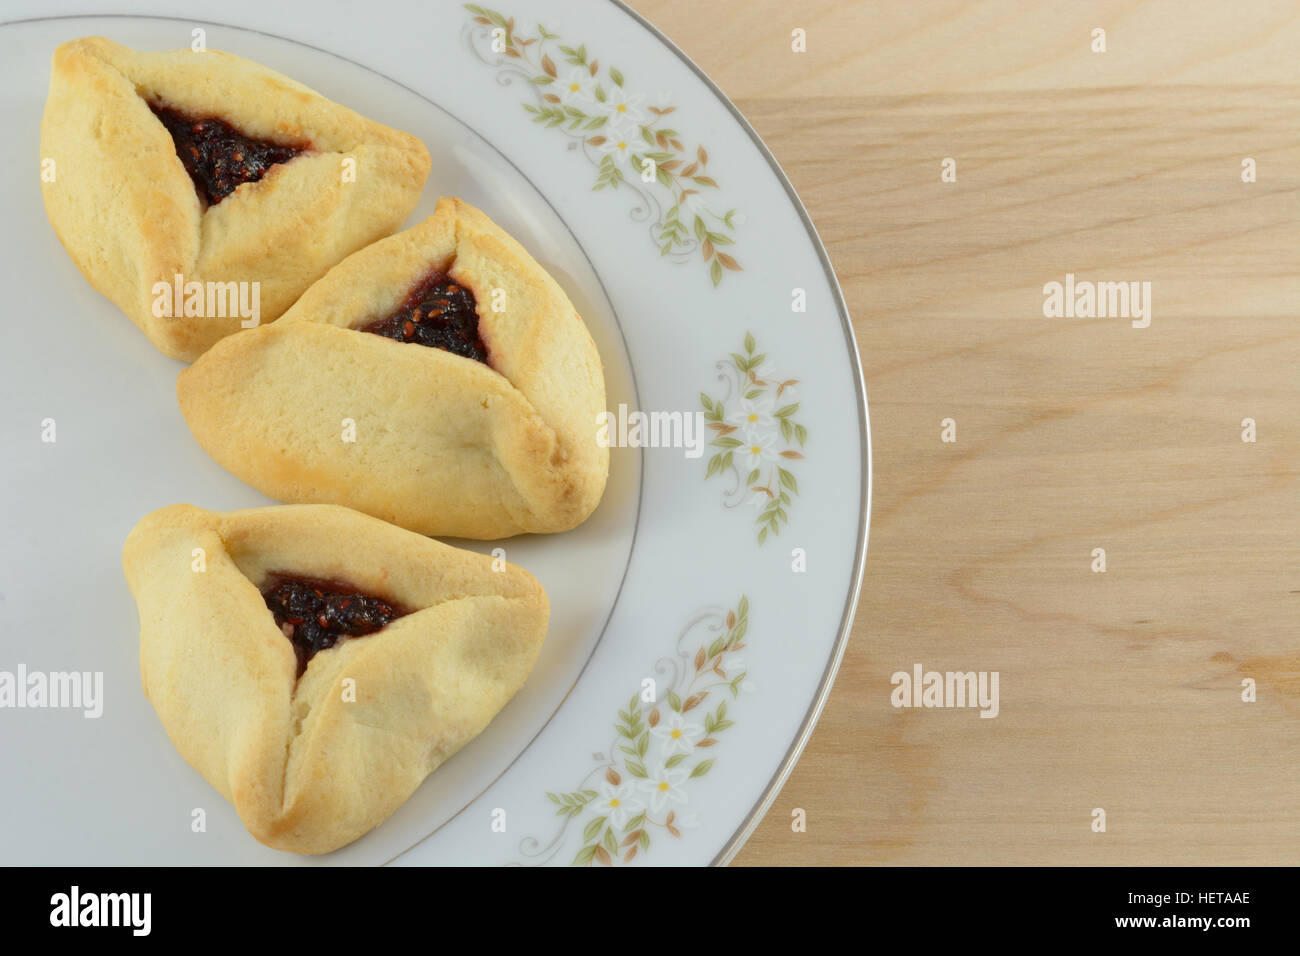 Hamantaschen, pastries on white plate - Stock Image